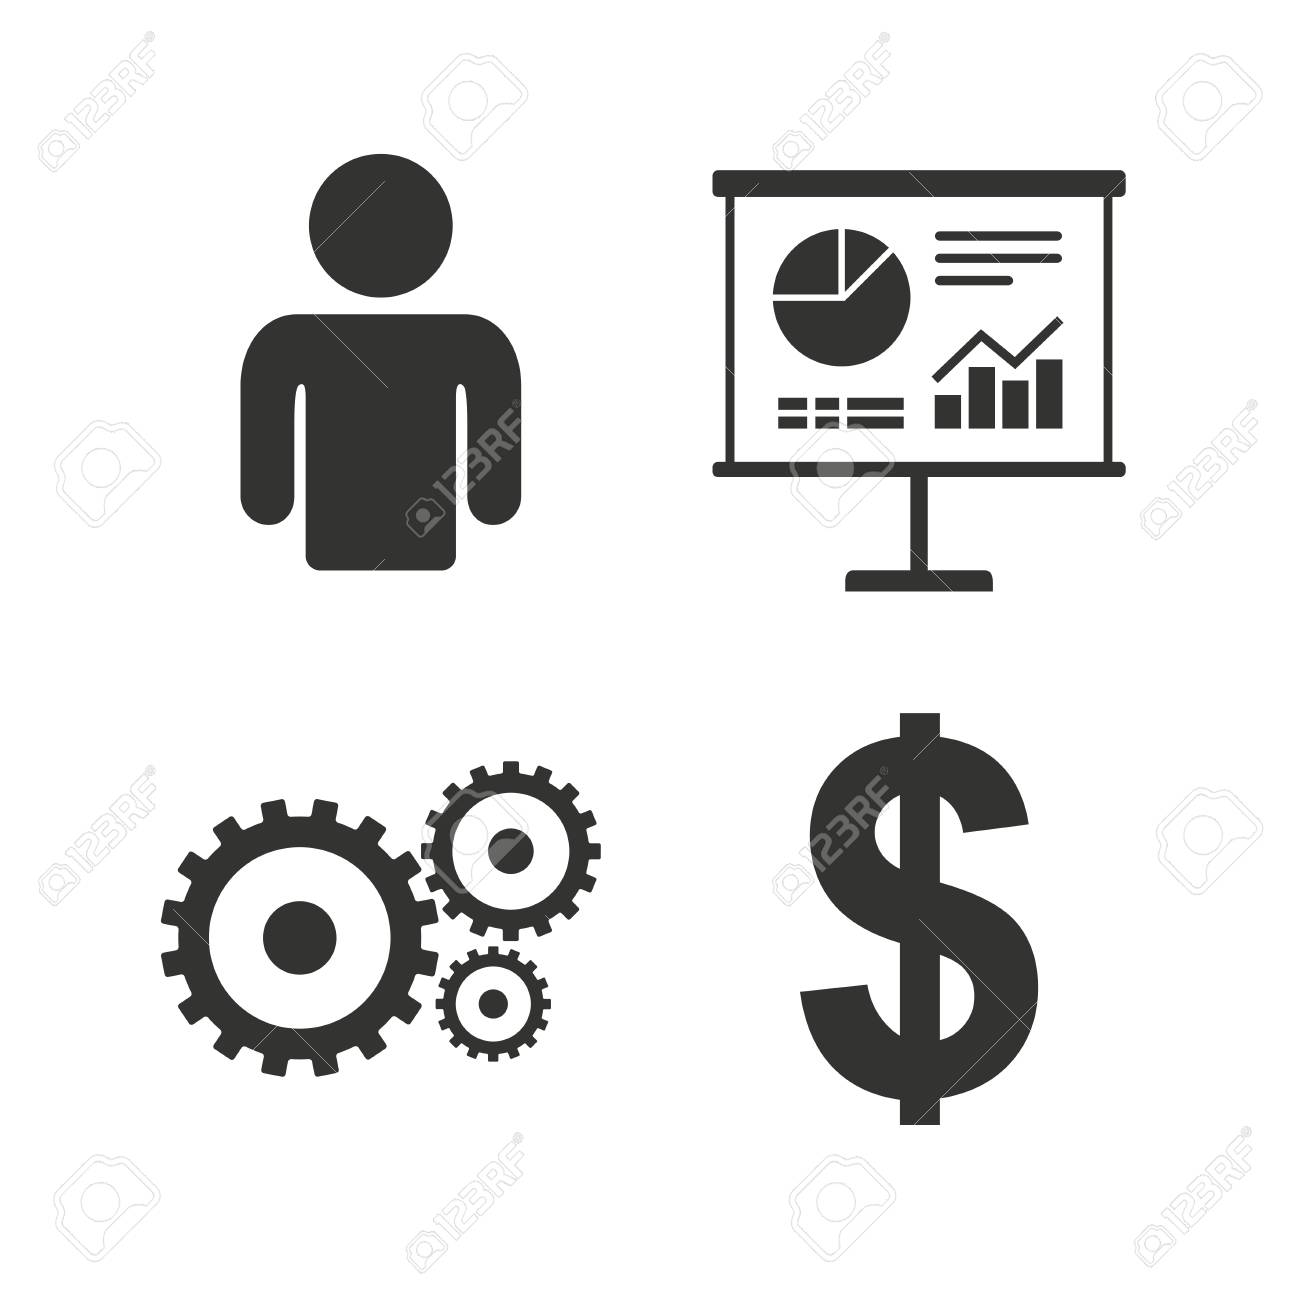 Business Icons Human Silhouette And Presentation Board With